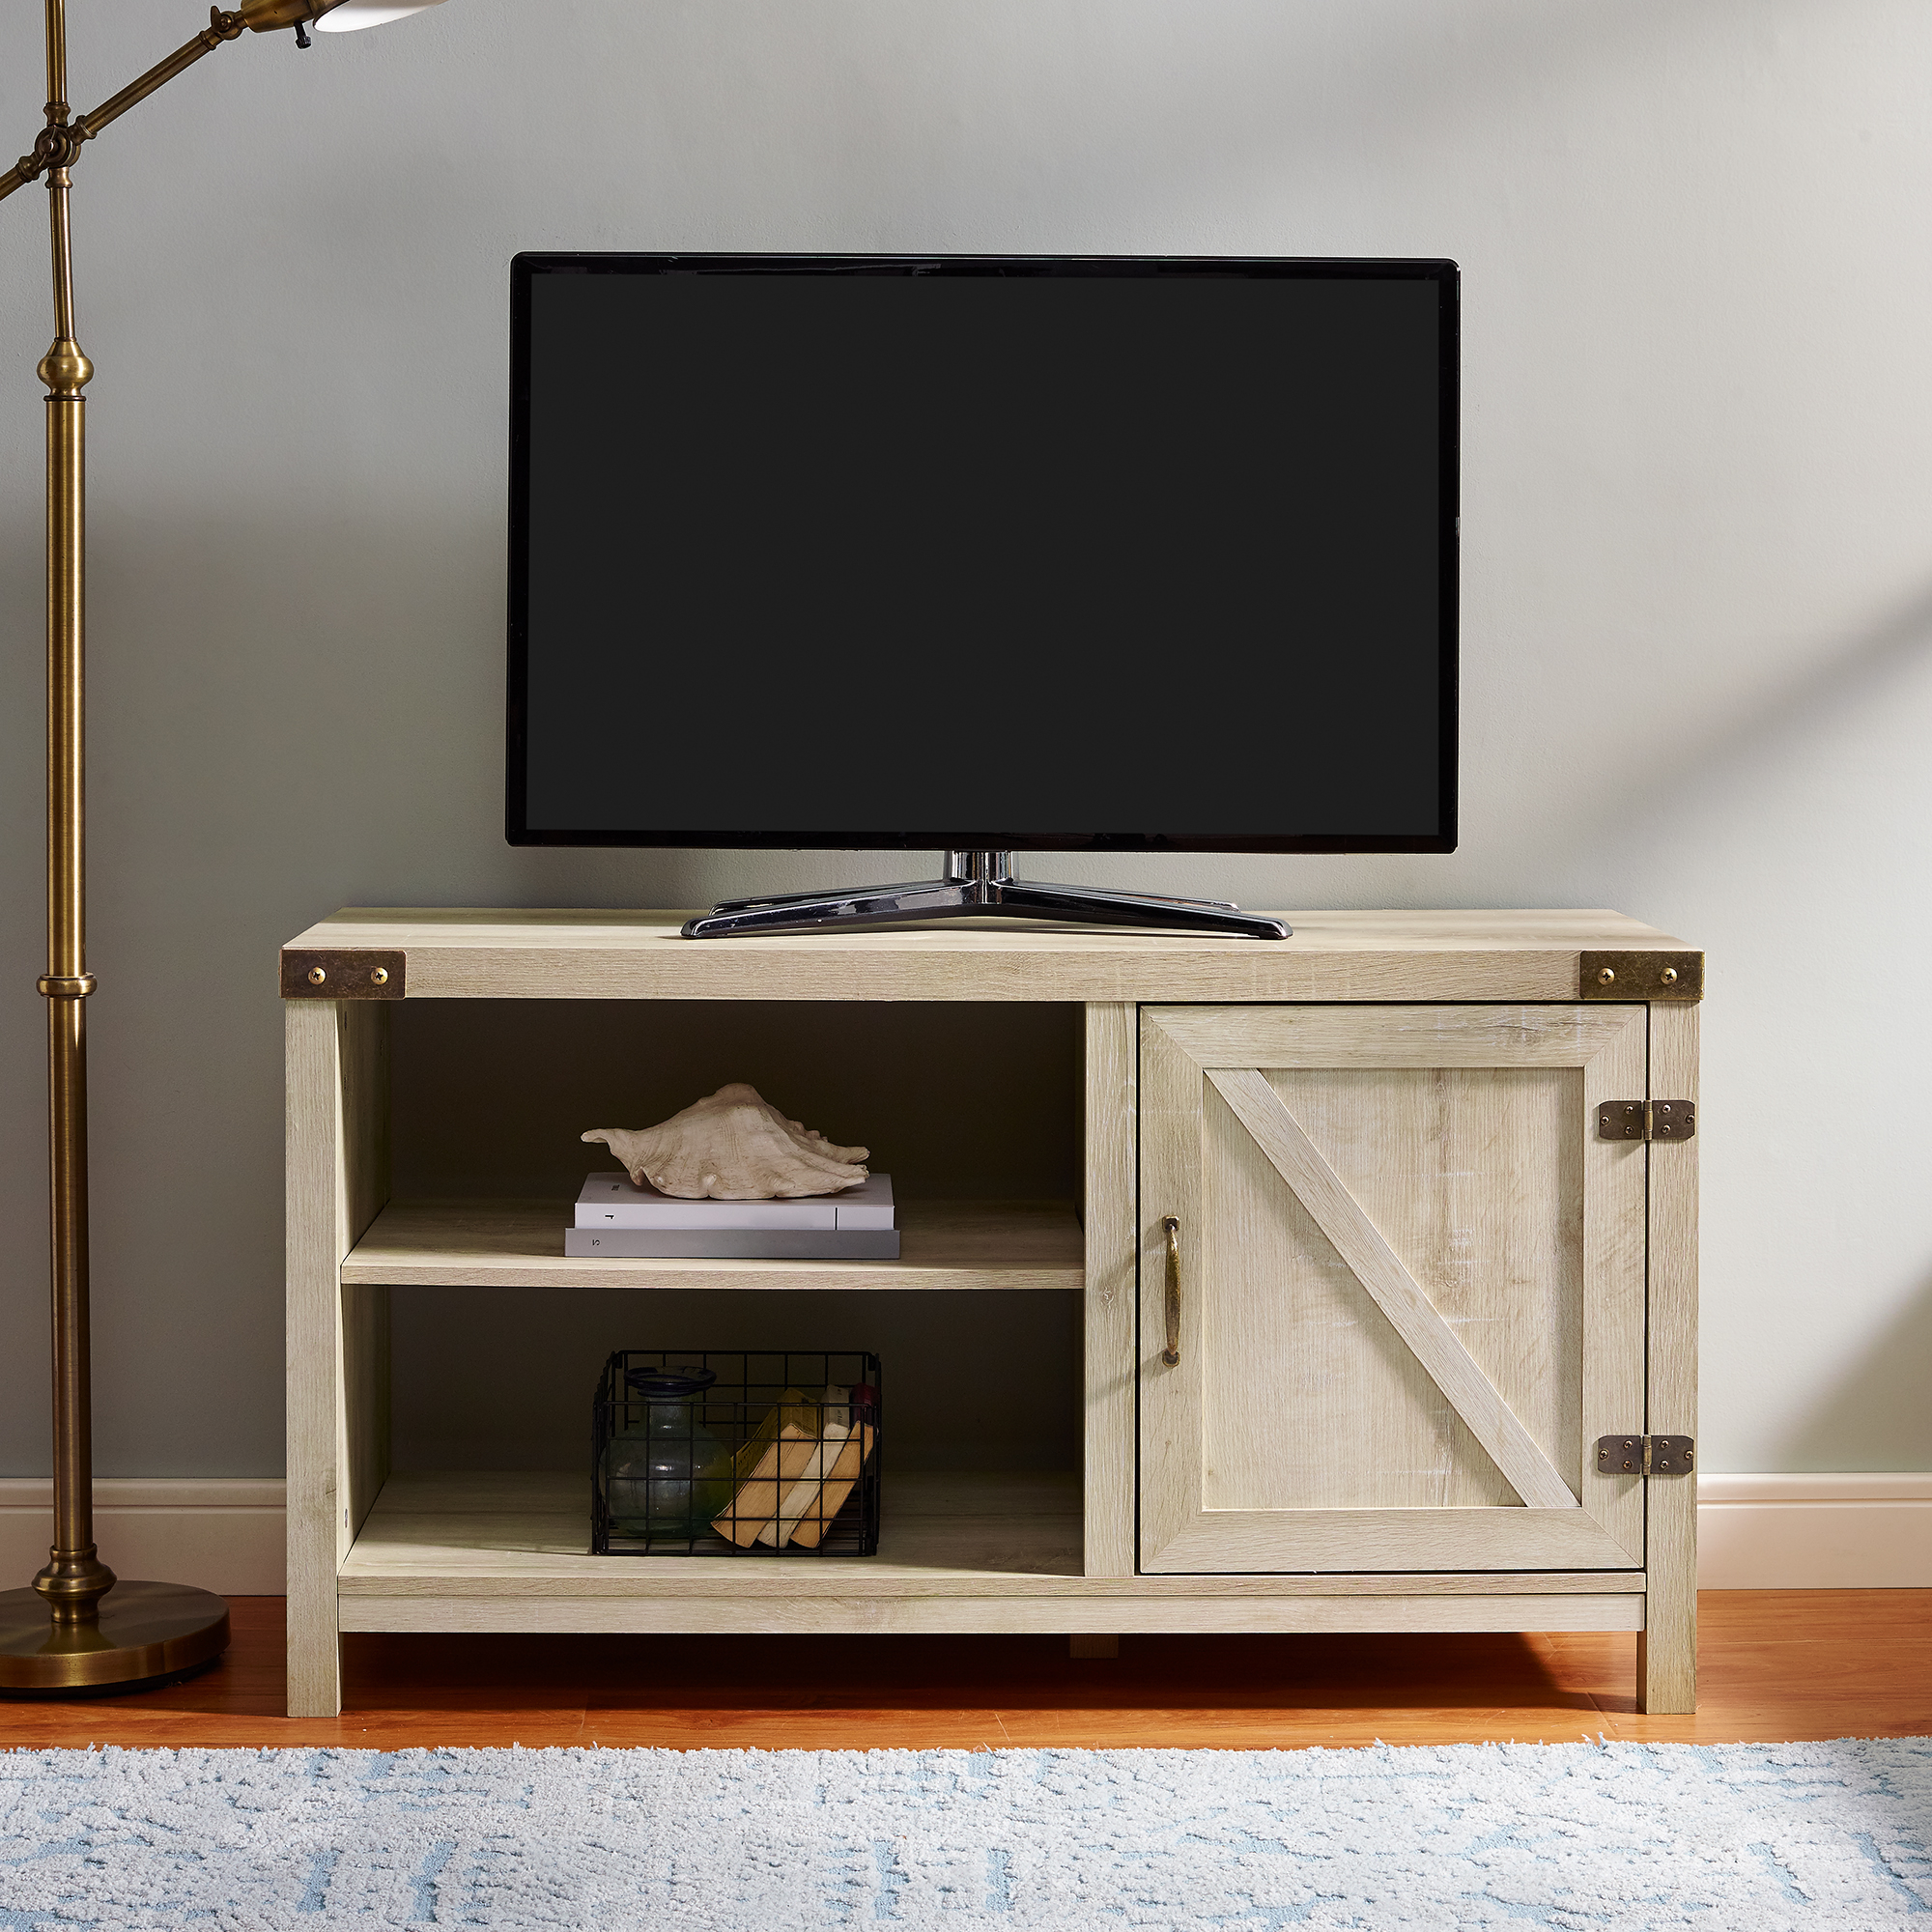 """Most Recent Tv Stands For Tvs Up To 50"""" Intended For Woven Paths Farmhouse Barn Door Tv Stand For Tvs Up To  (View 6 of 25)"""